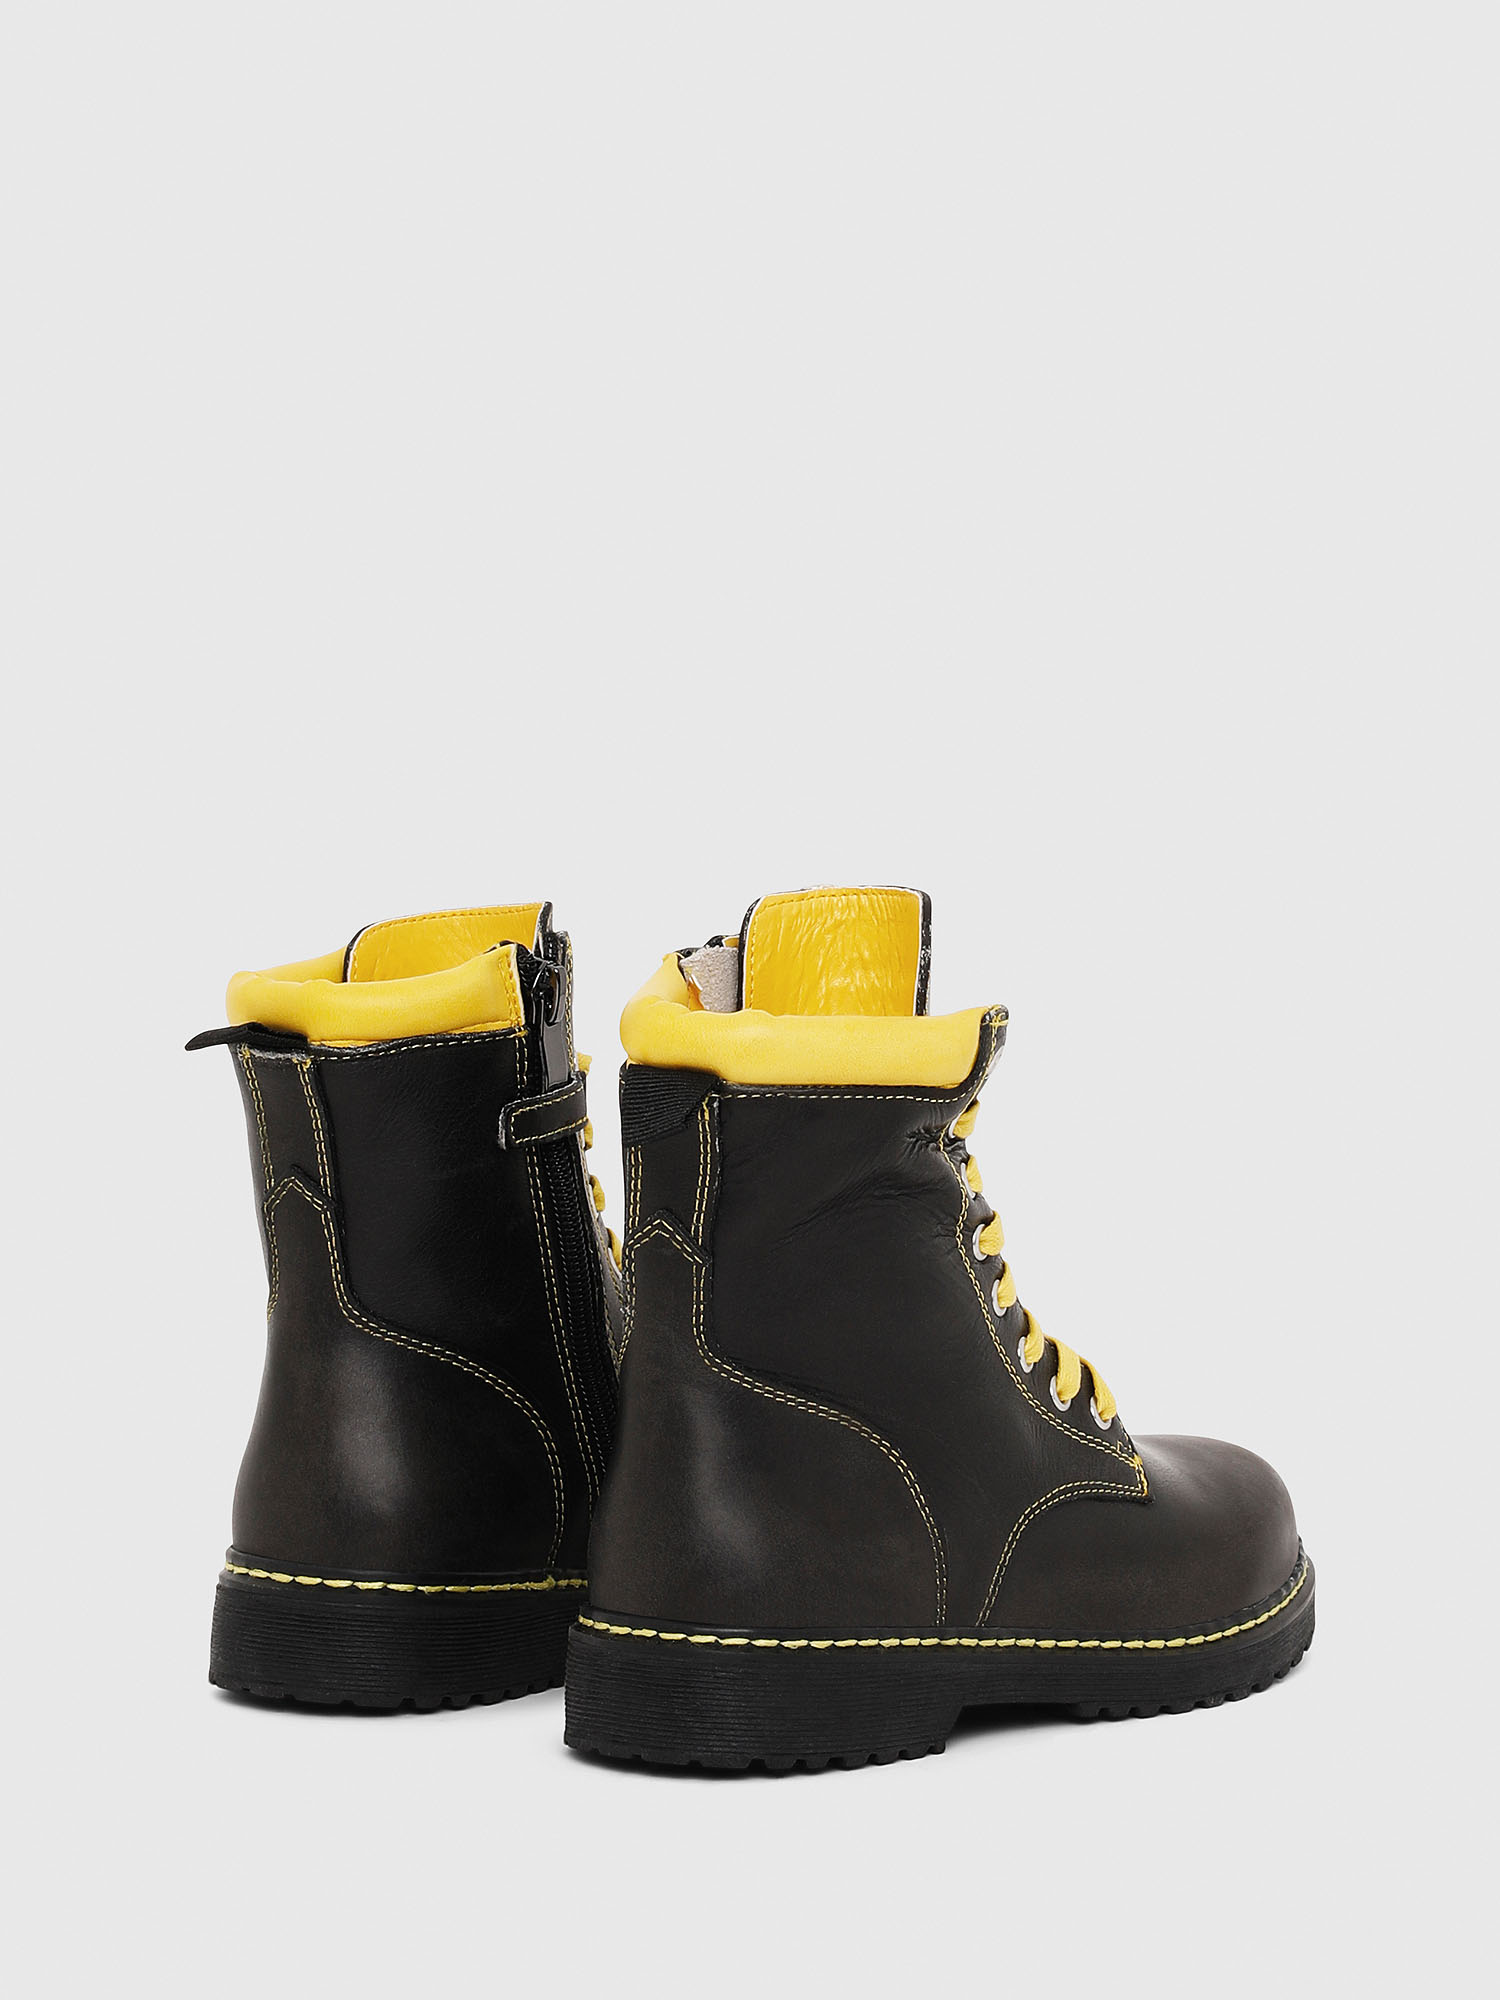 Diesel - HB LACE UP 04 CH,  - Calzado - Image 3